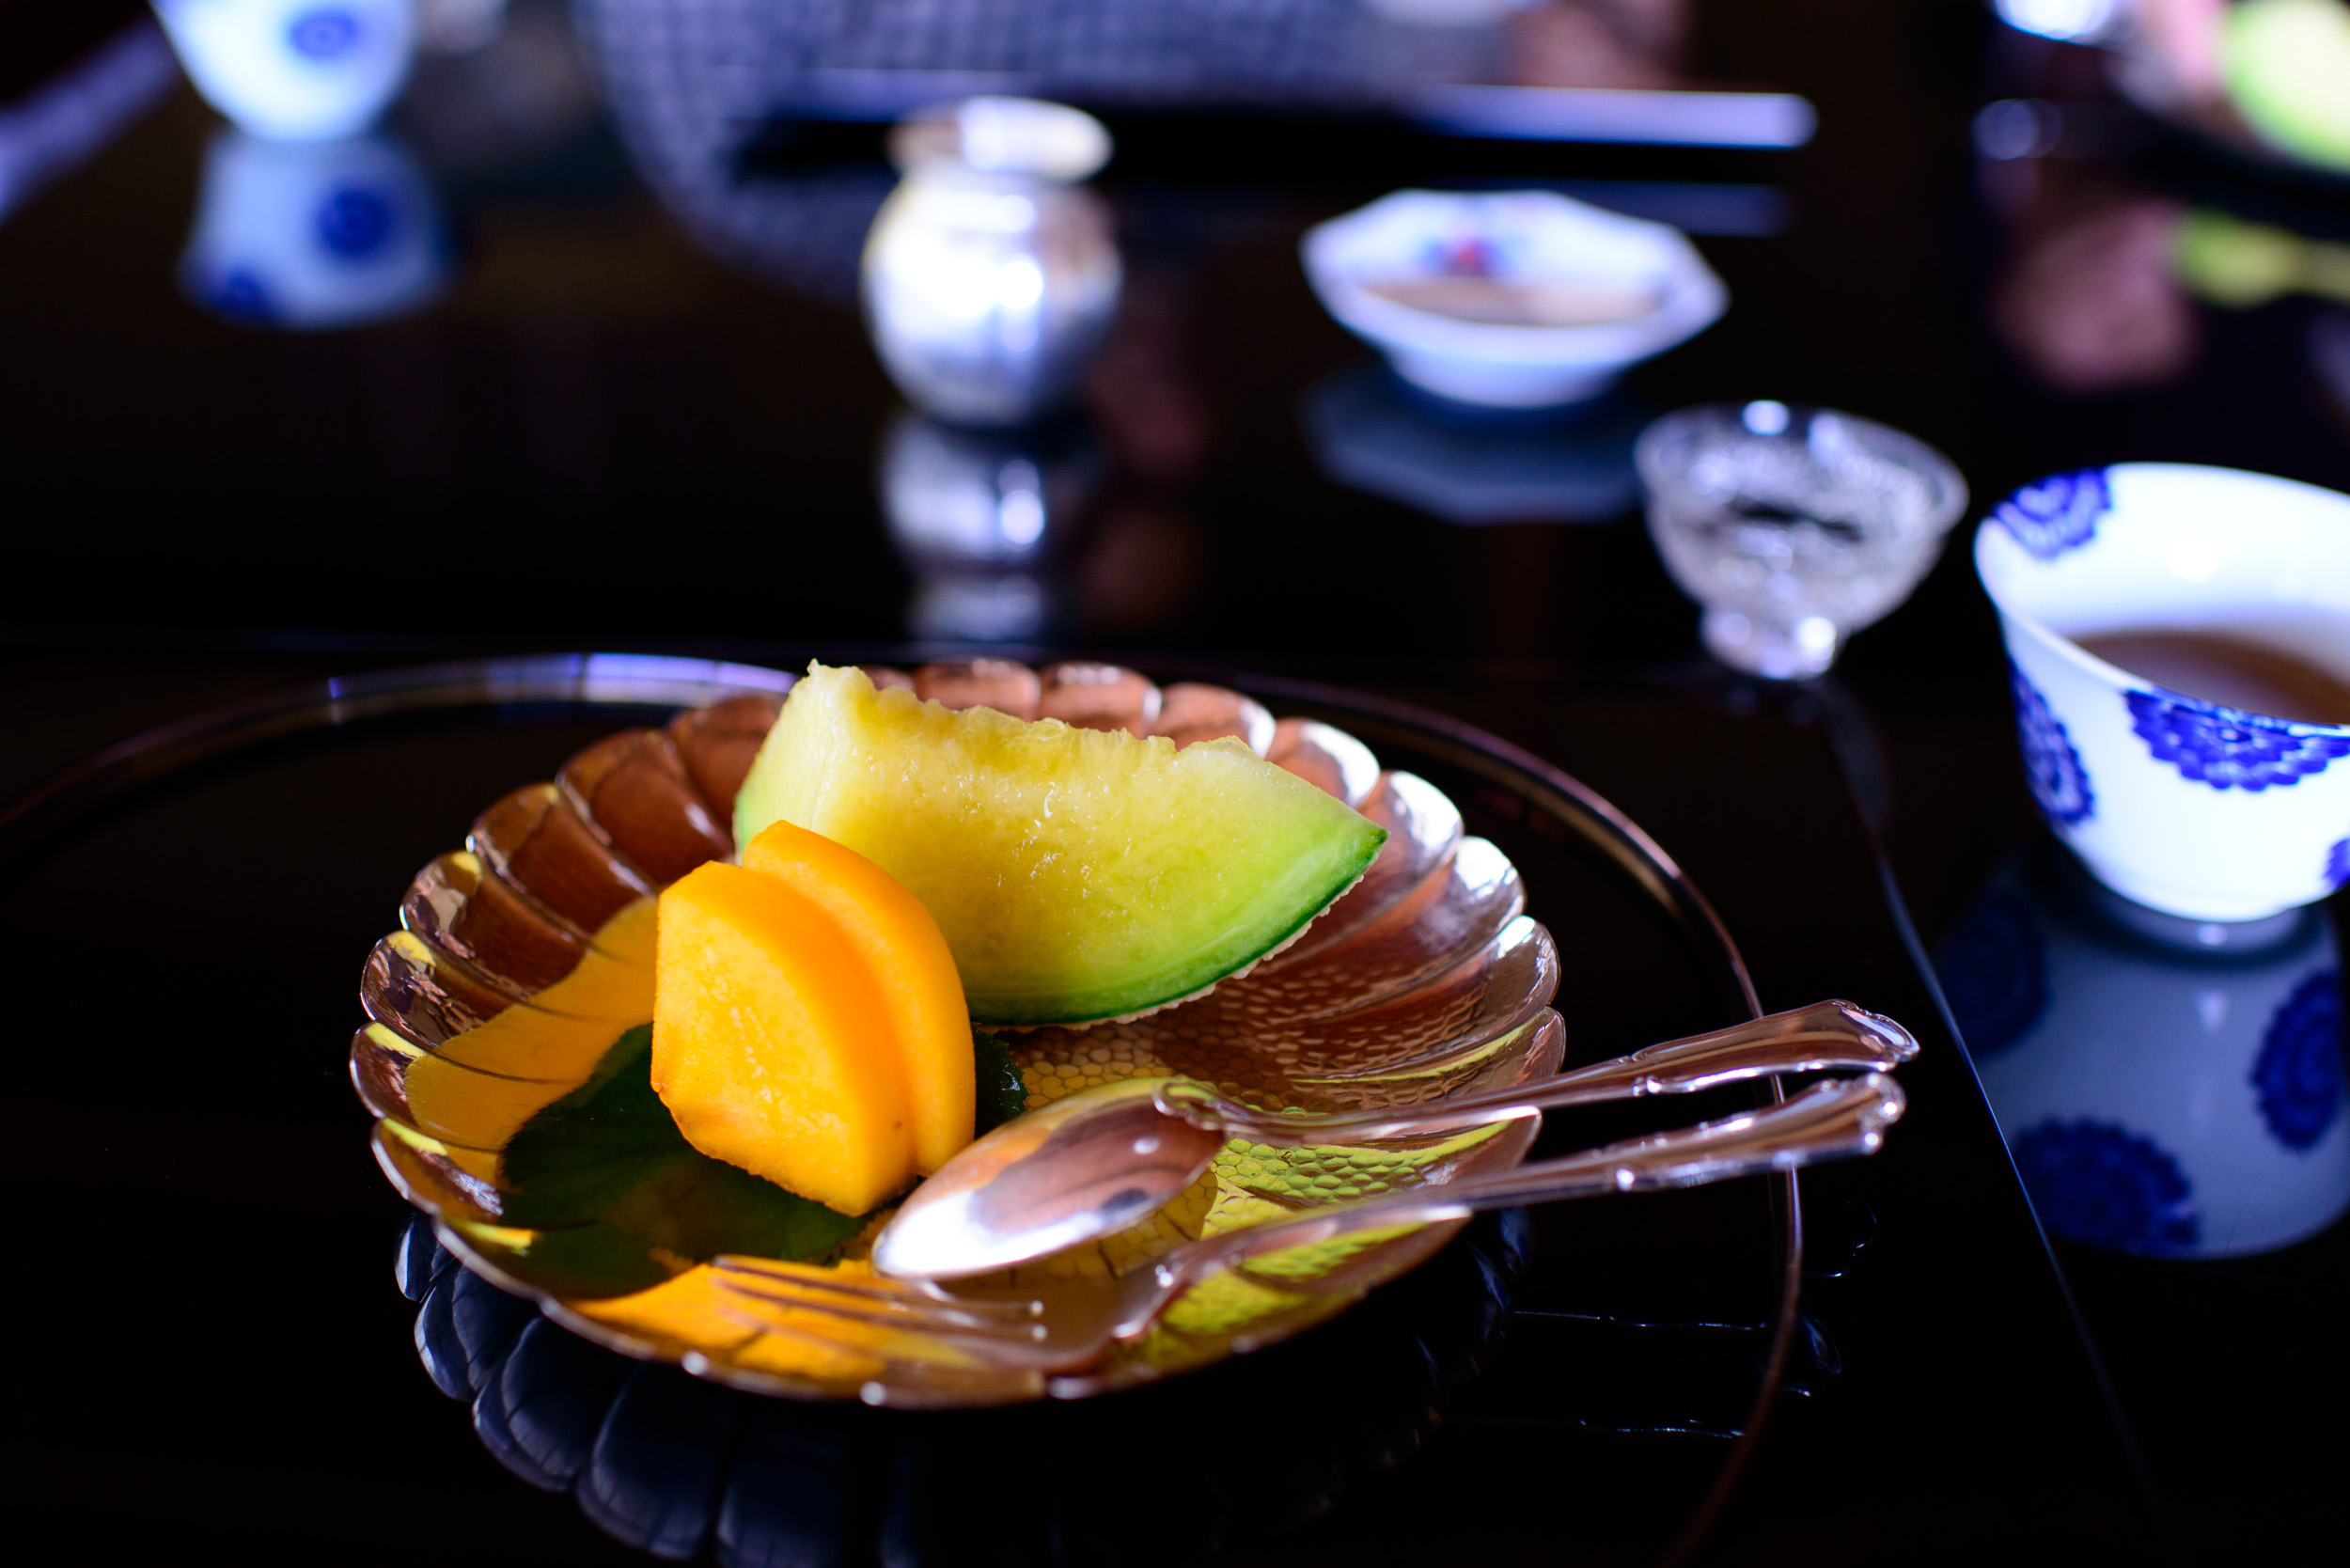 13th Course: Melon and sweet persimmon